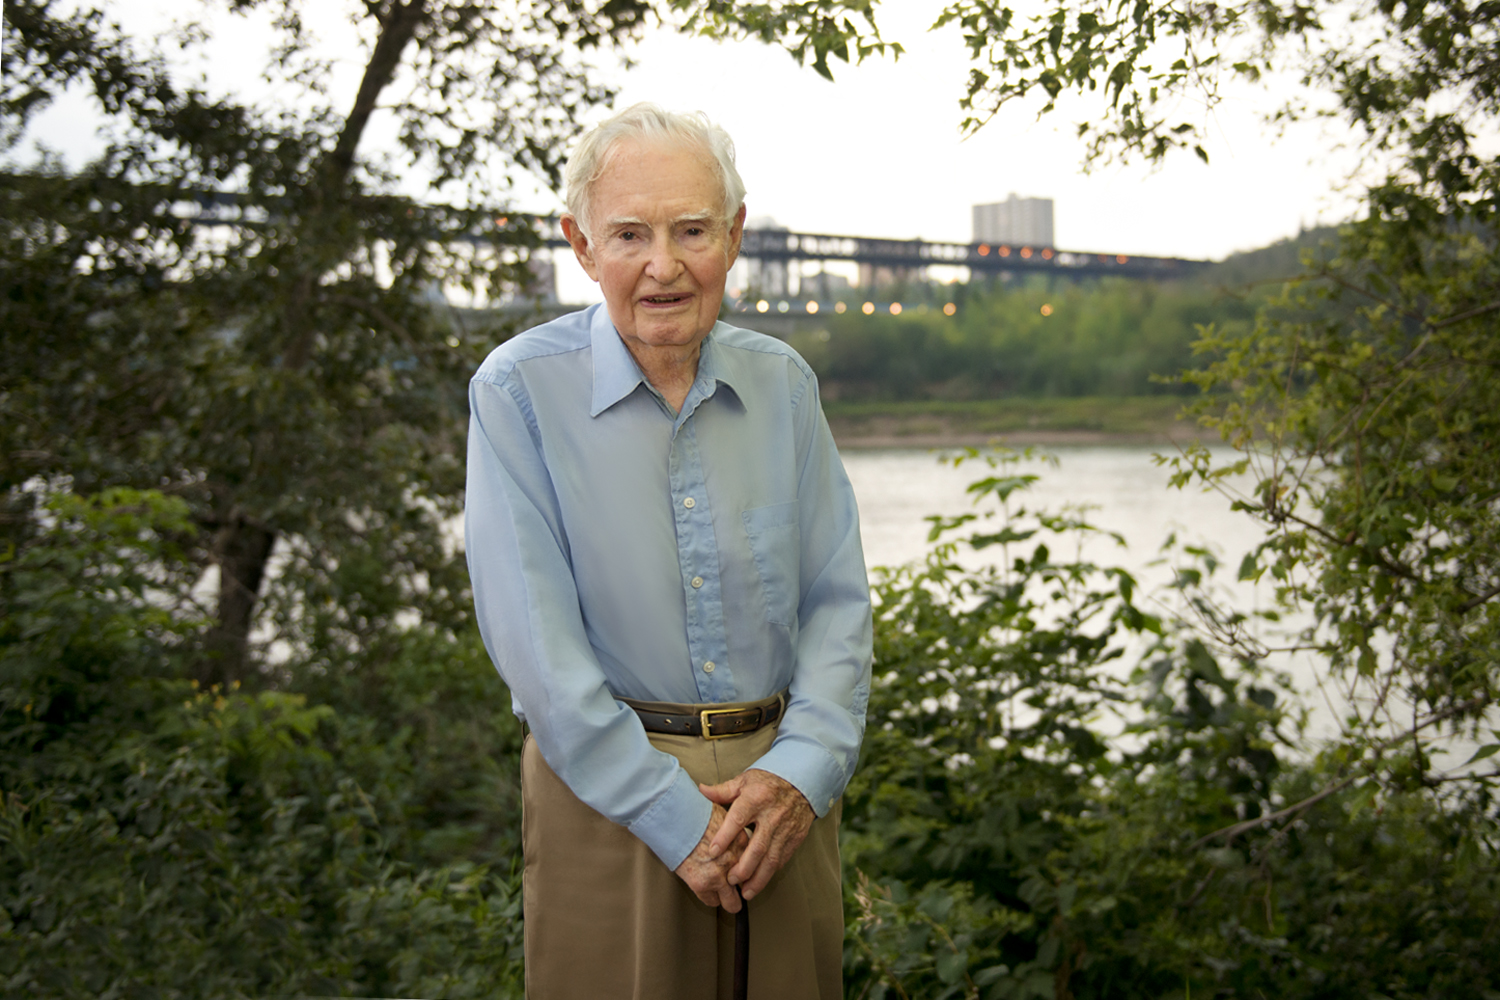 The Author, a sharp 91years young, on the bank of the North Saskatchewan River overlooking the High Level Bridge, not far from theformer site of John Walter's Ferry.   This portrait was taken as part of the Author'sinvestiture with the  Alberta Order of Excellence  .